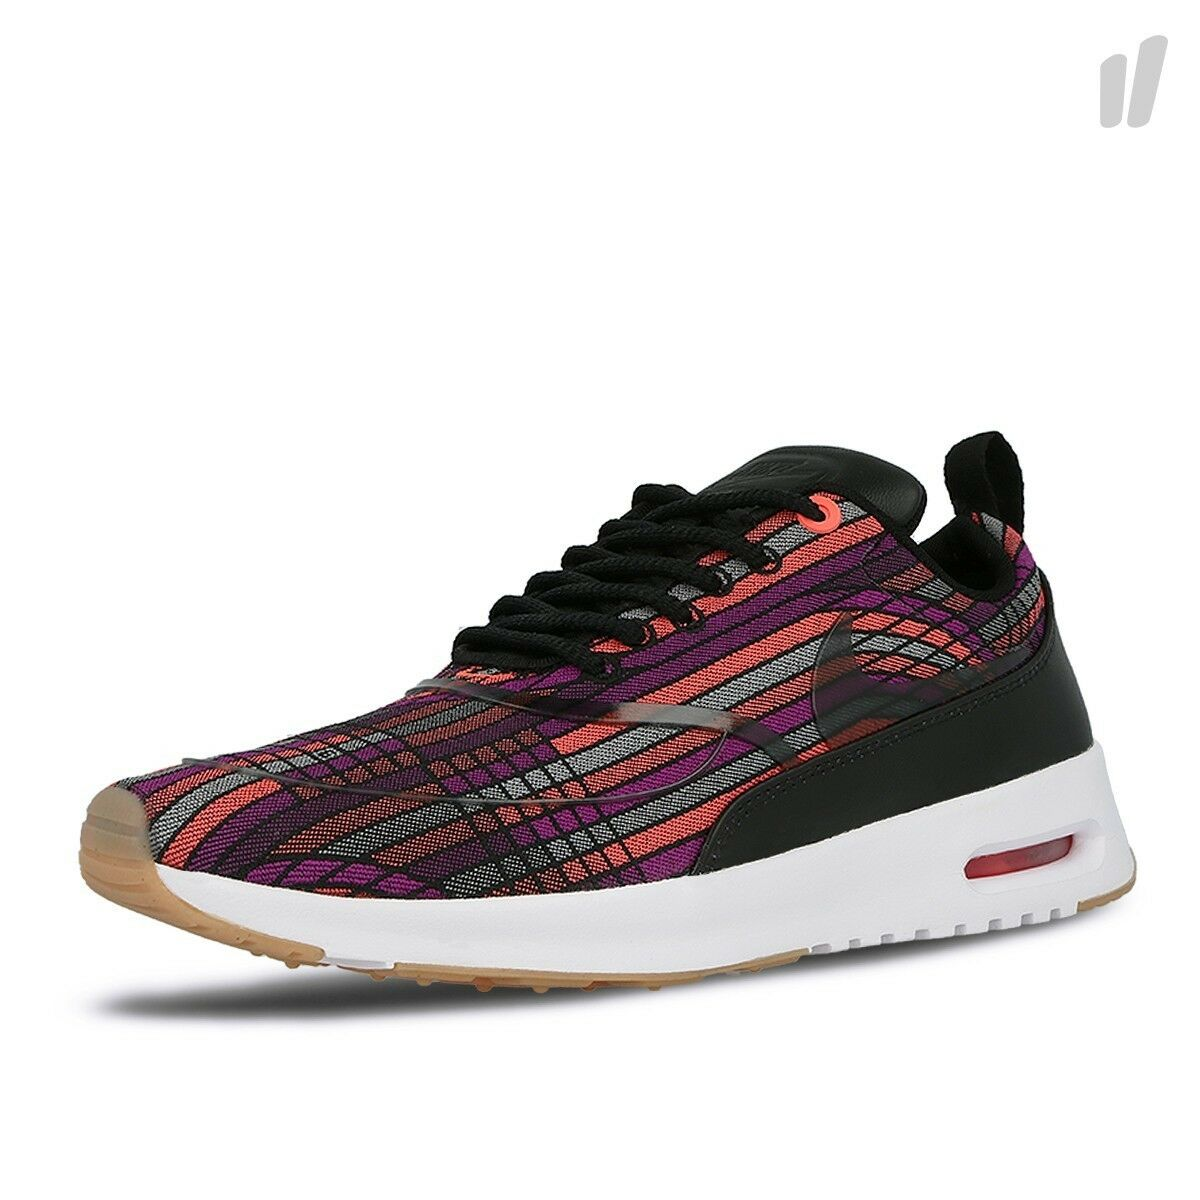 UK 5 Nike Air Max Thea Ultra JCRD PRM Trainers EUR 38.5 US 7.5 885021-001